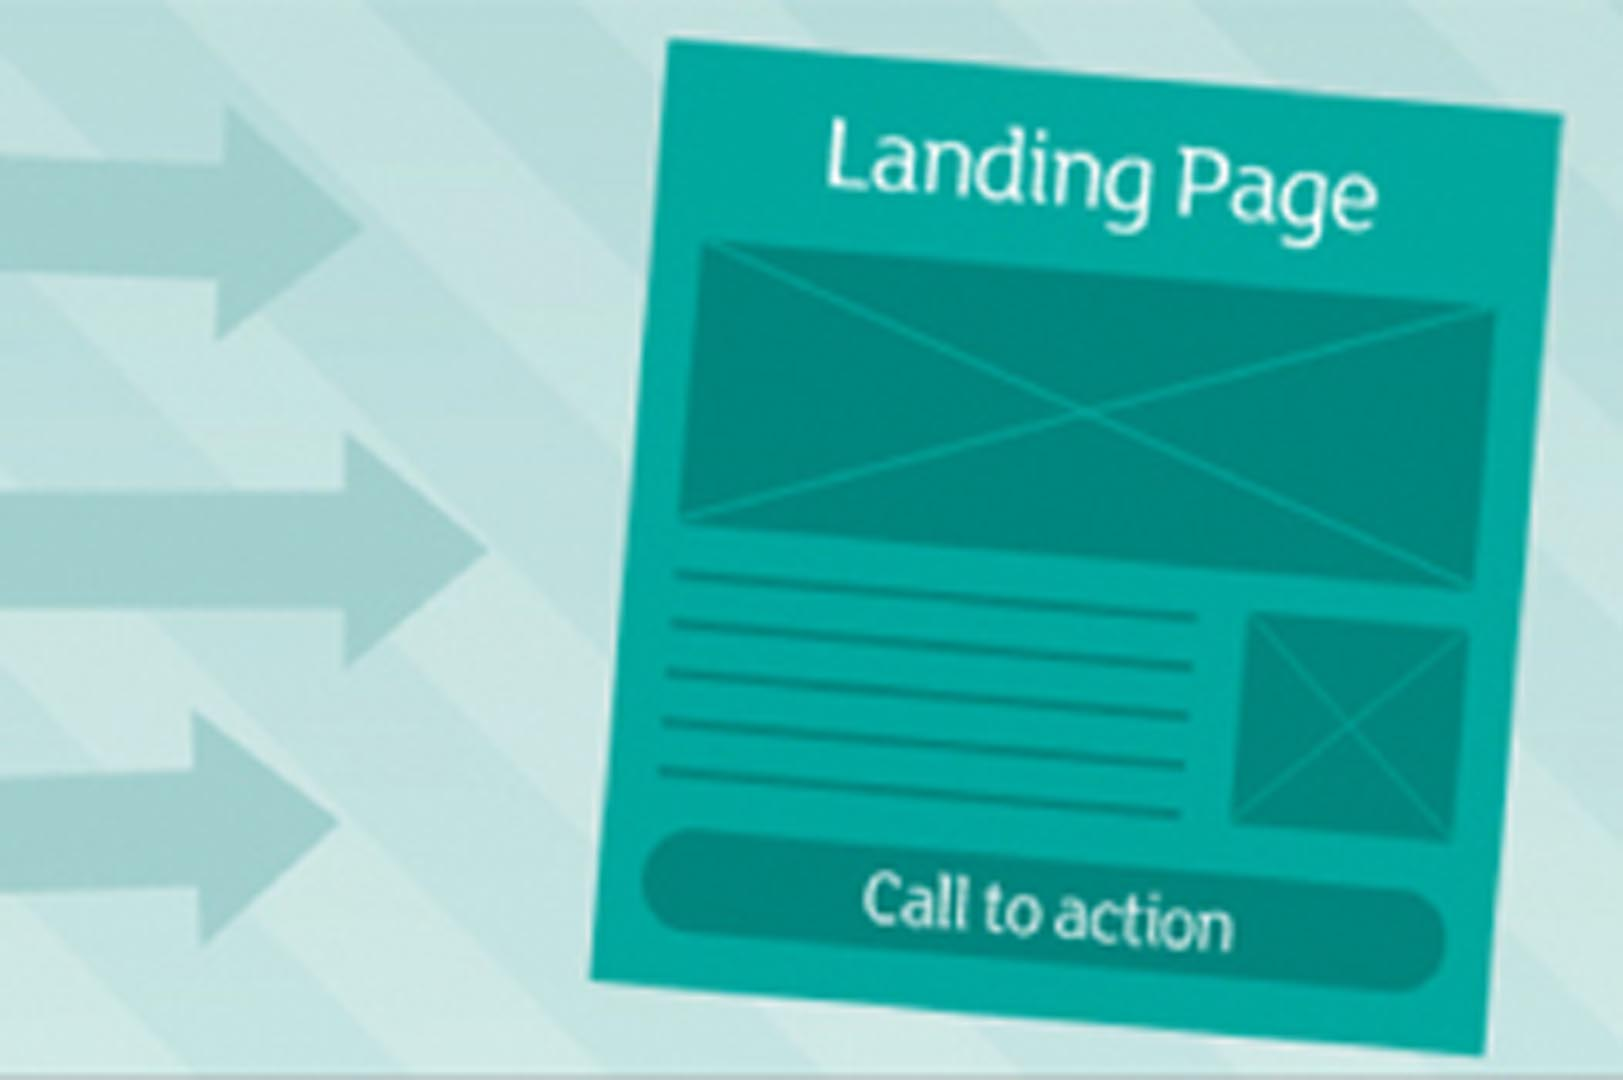 Mind the gap! Landing pages provide the link online